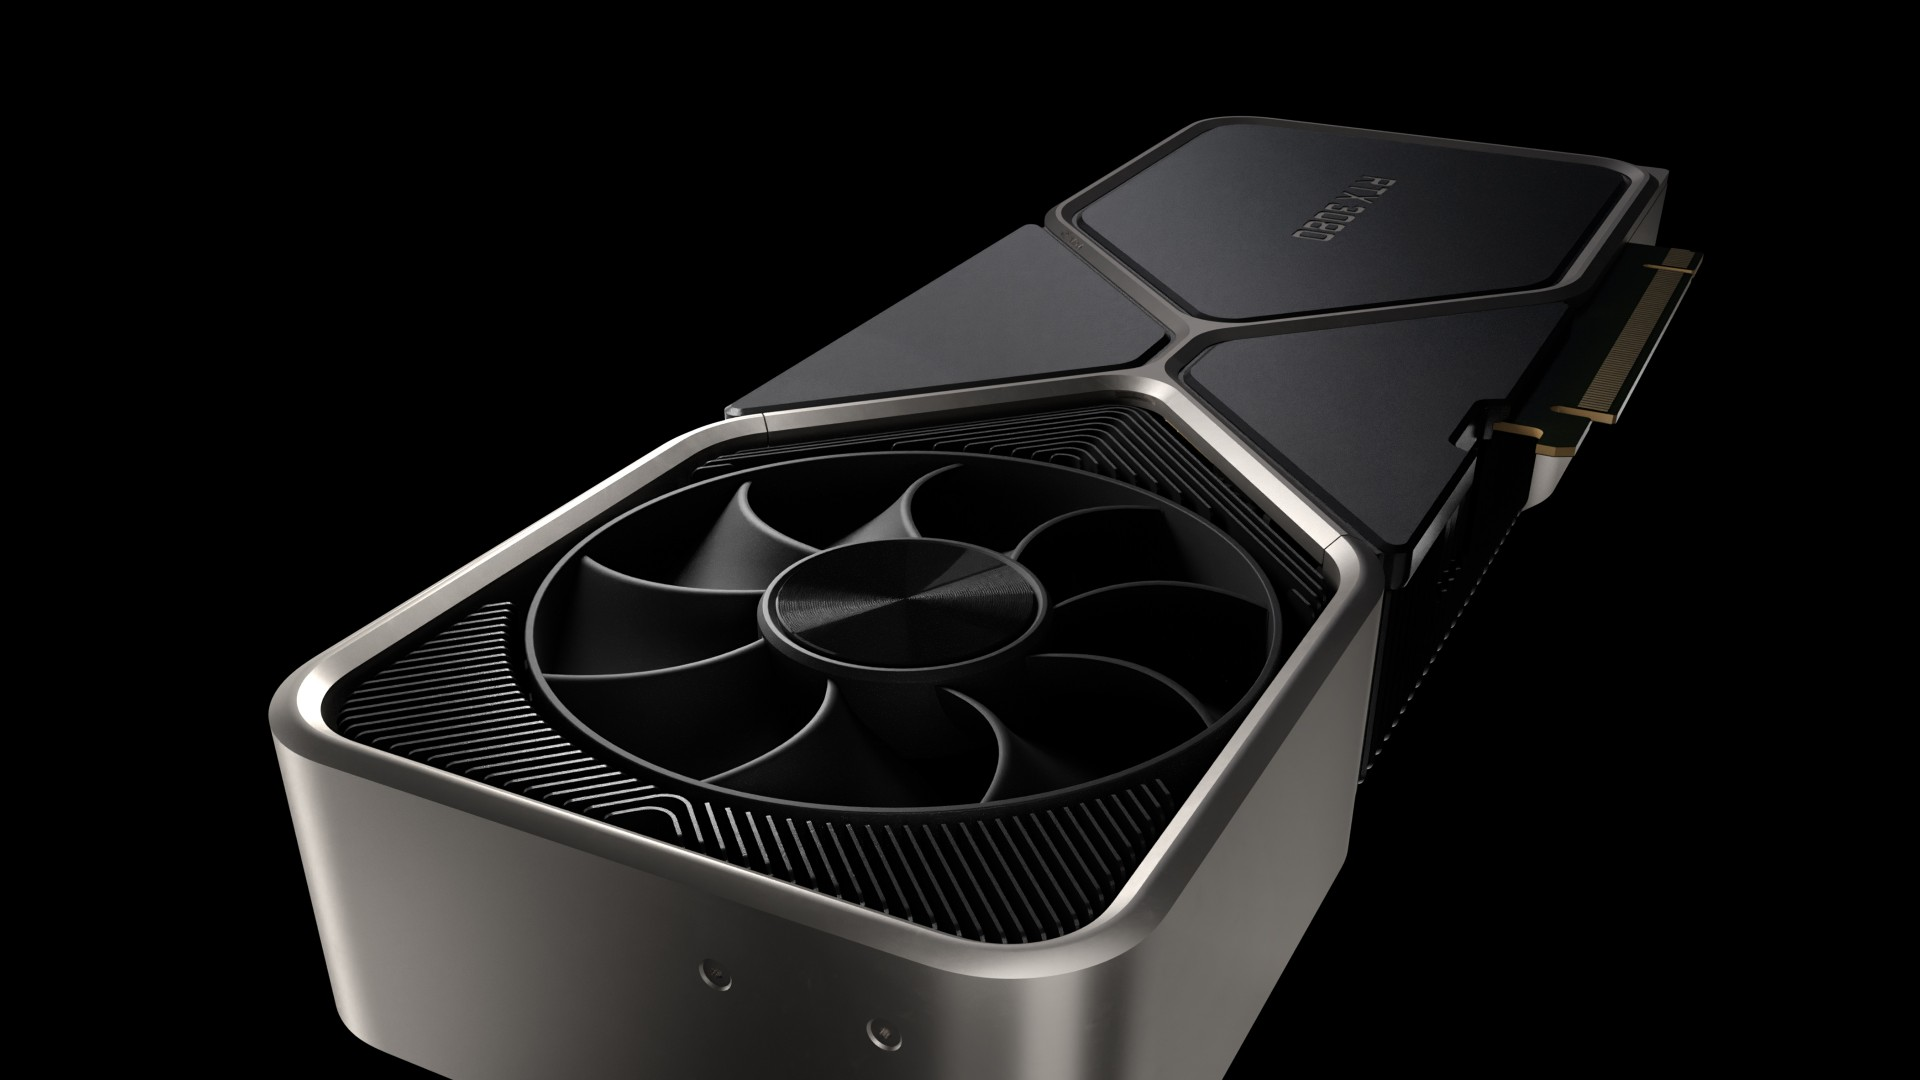 Galax and Gigabyte Accidentally Confirms Nvidia RTX 3060 Graphics Card 15